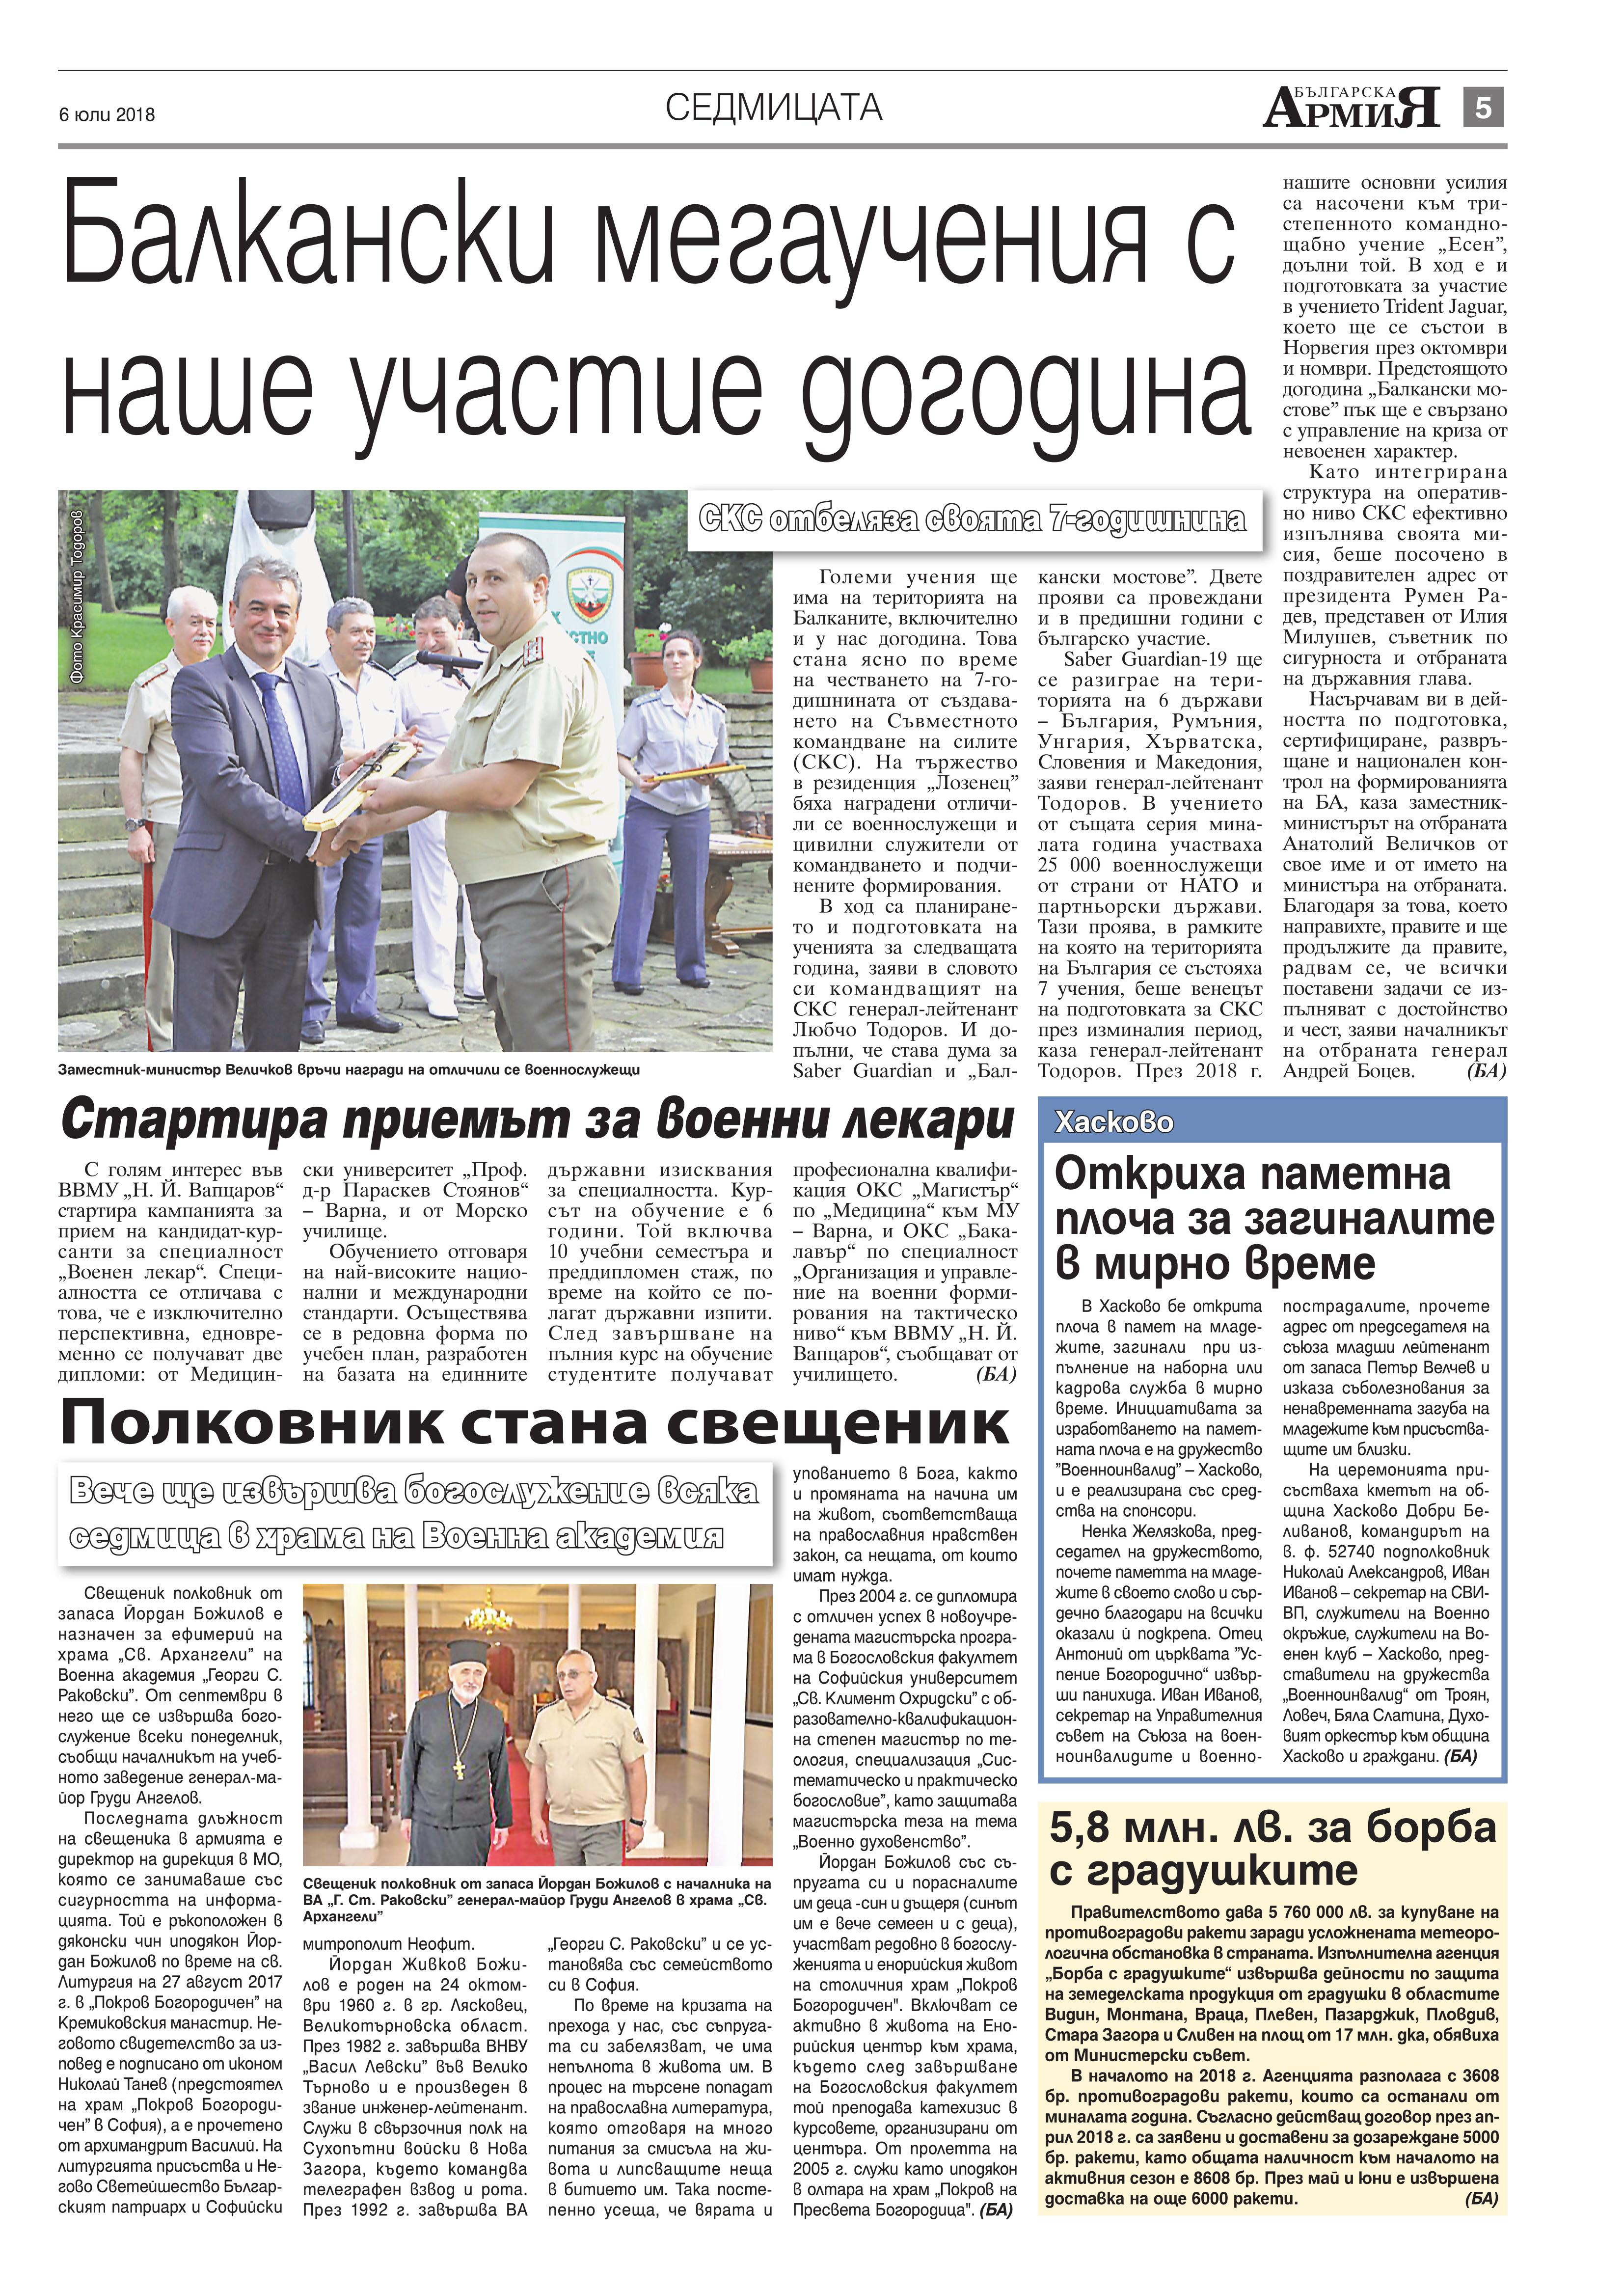 https://armymedia.bg/wp-content/uploads/2015/06/05.page1_-54.jpg